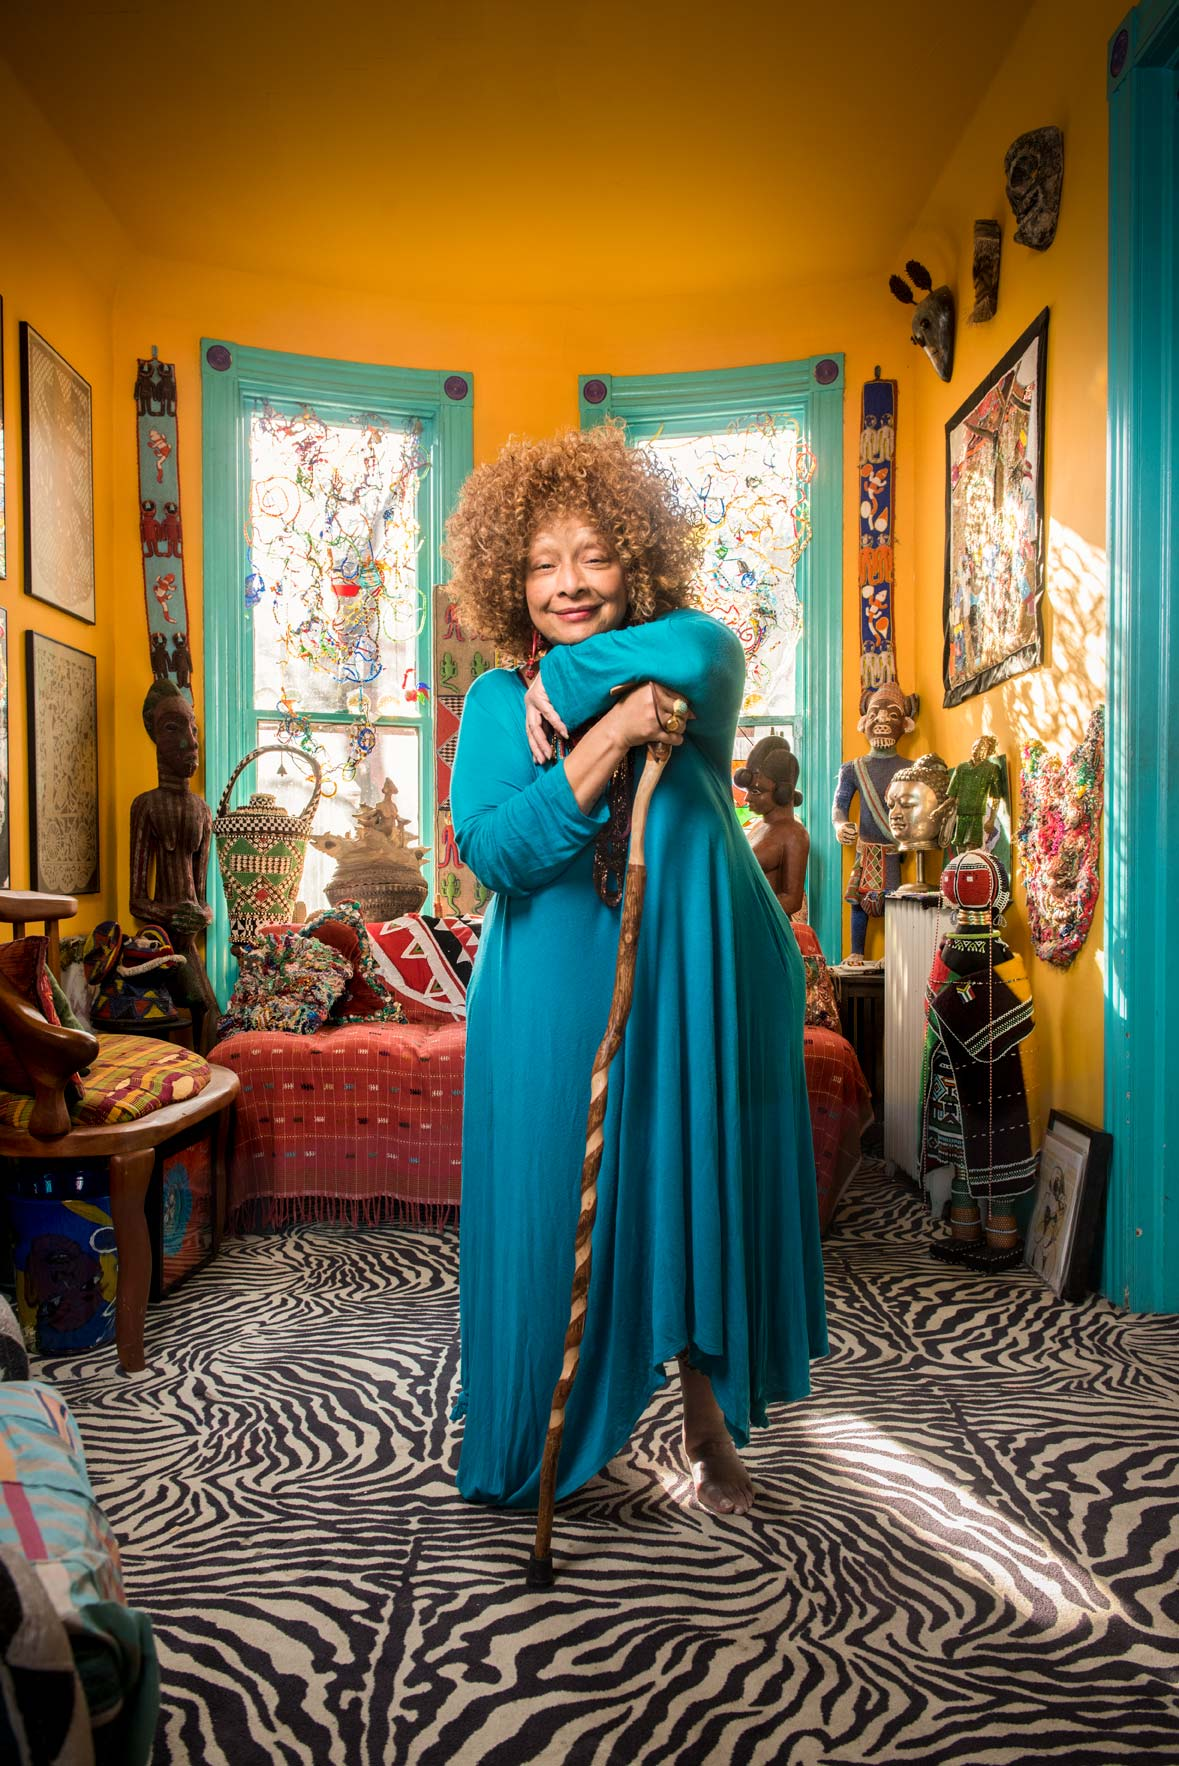 Artist and MacArthur Genius Grant recipient, Joyce Scott, in her Baltimore living room